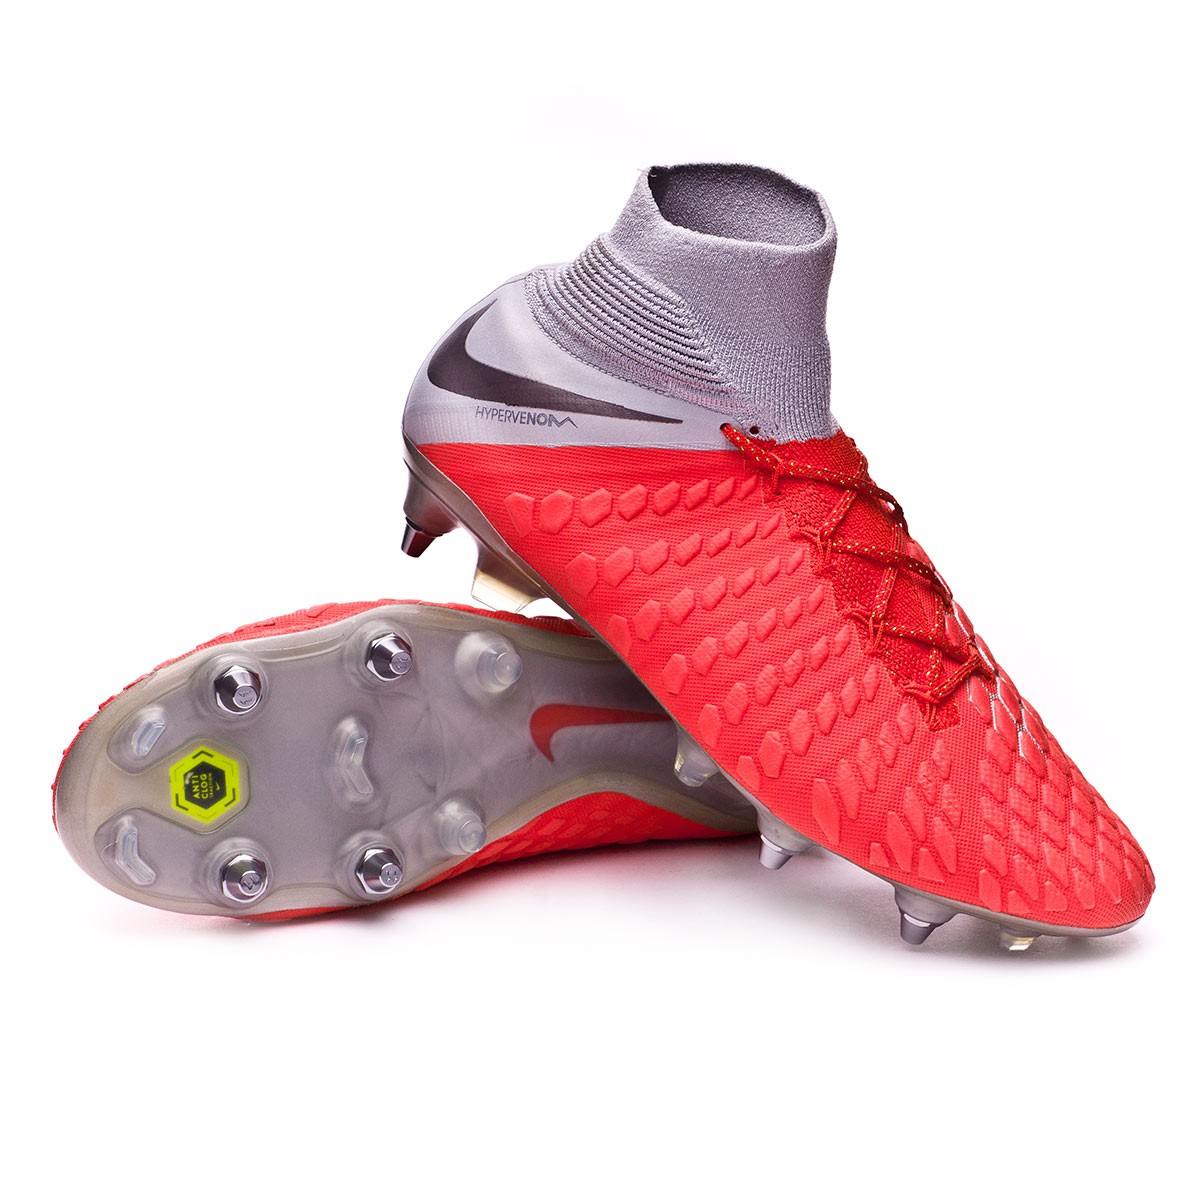 818397e7ce3d Football Boots Nike Hypervenom Phantom III Elite DF Anti-Clog SG-Pro Light  crimson-Metallic dark grey-Wolf grey - Football store Fútbol Emotion